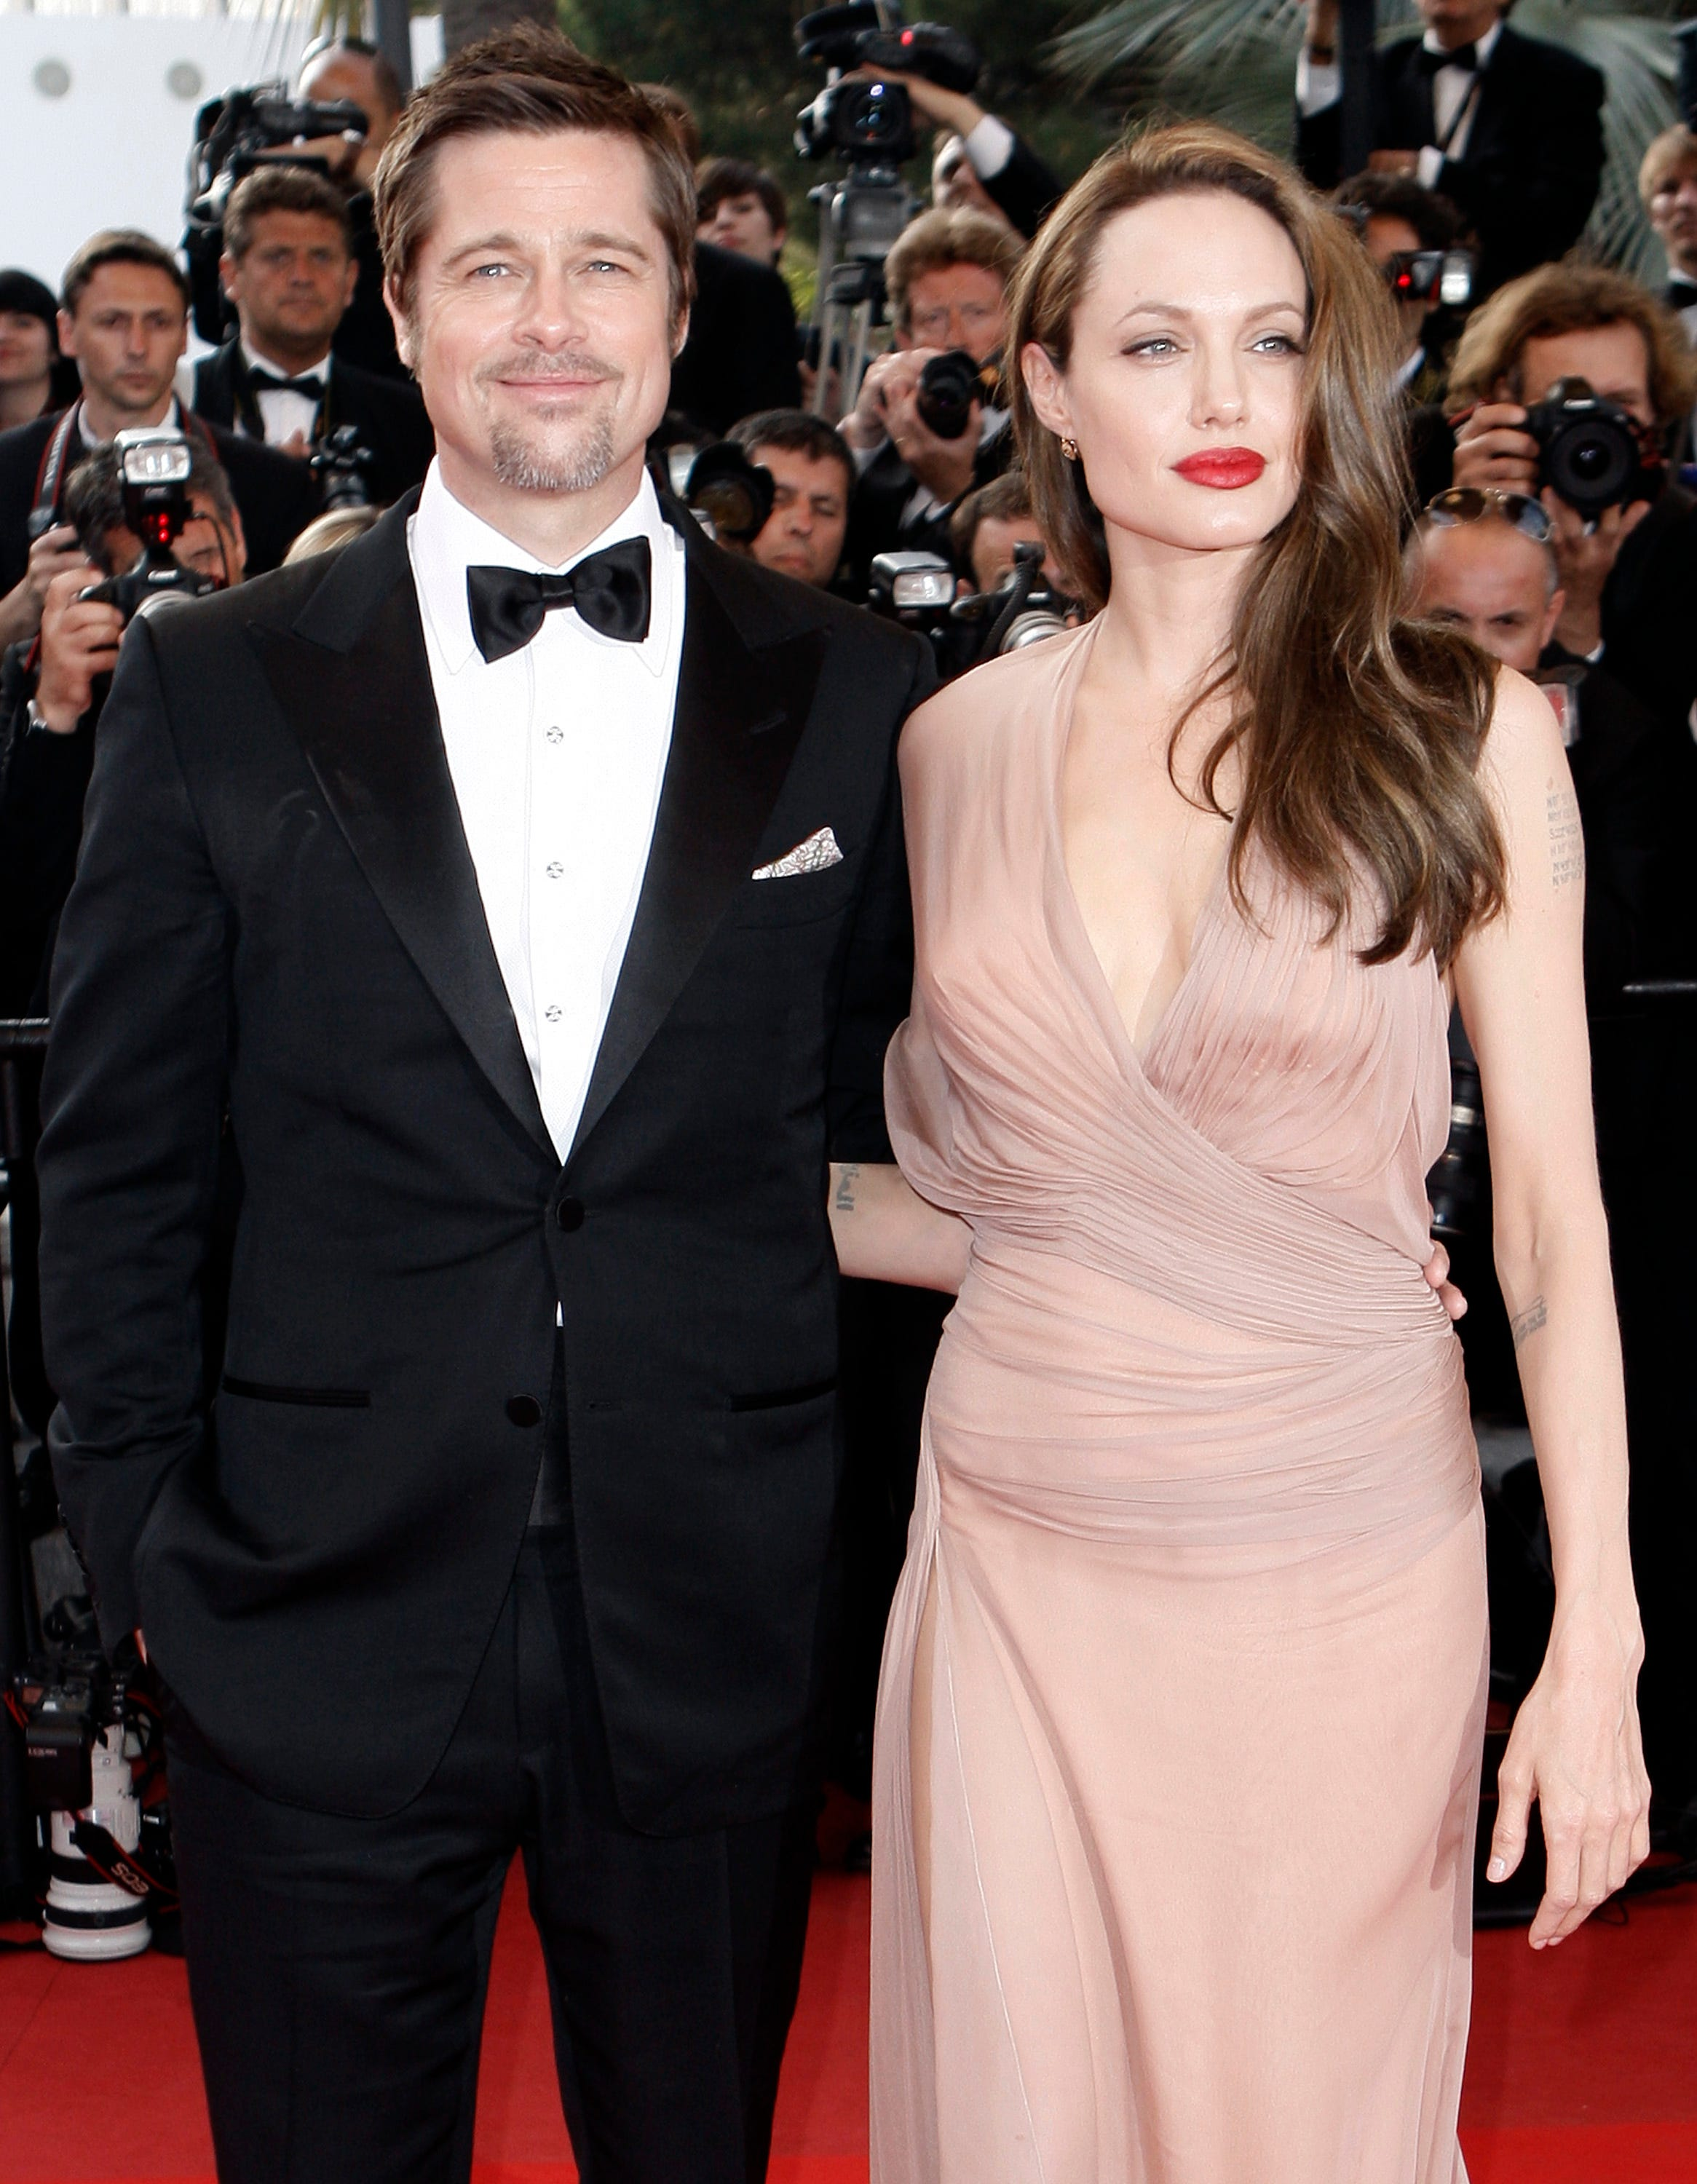 Angelina Jolie scores major victory in Brad Pitt divorce, private judge disqualified by appeals court